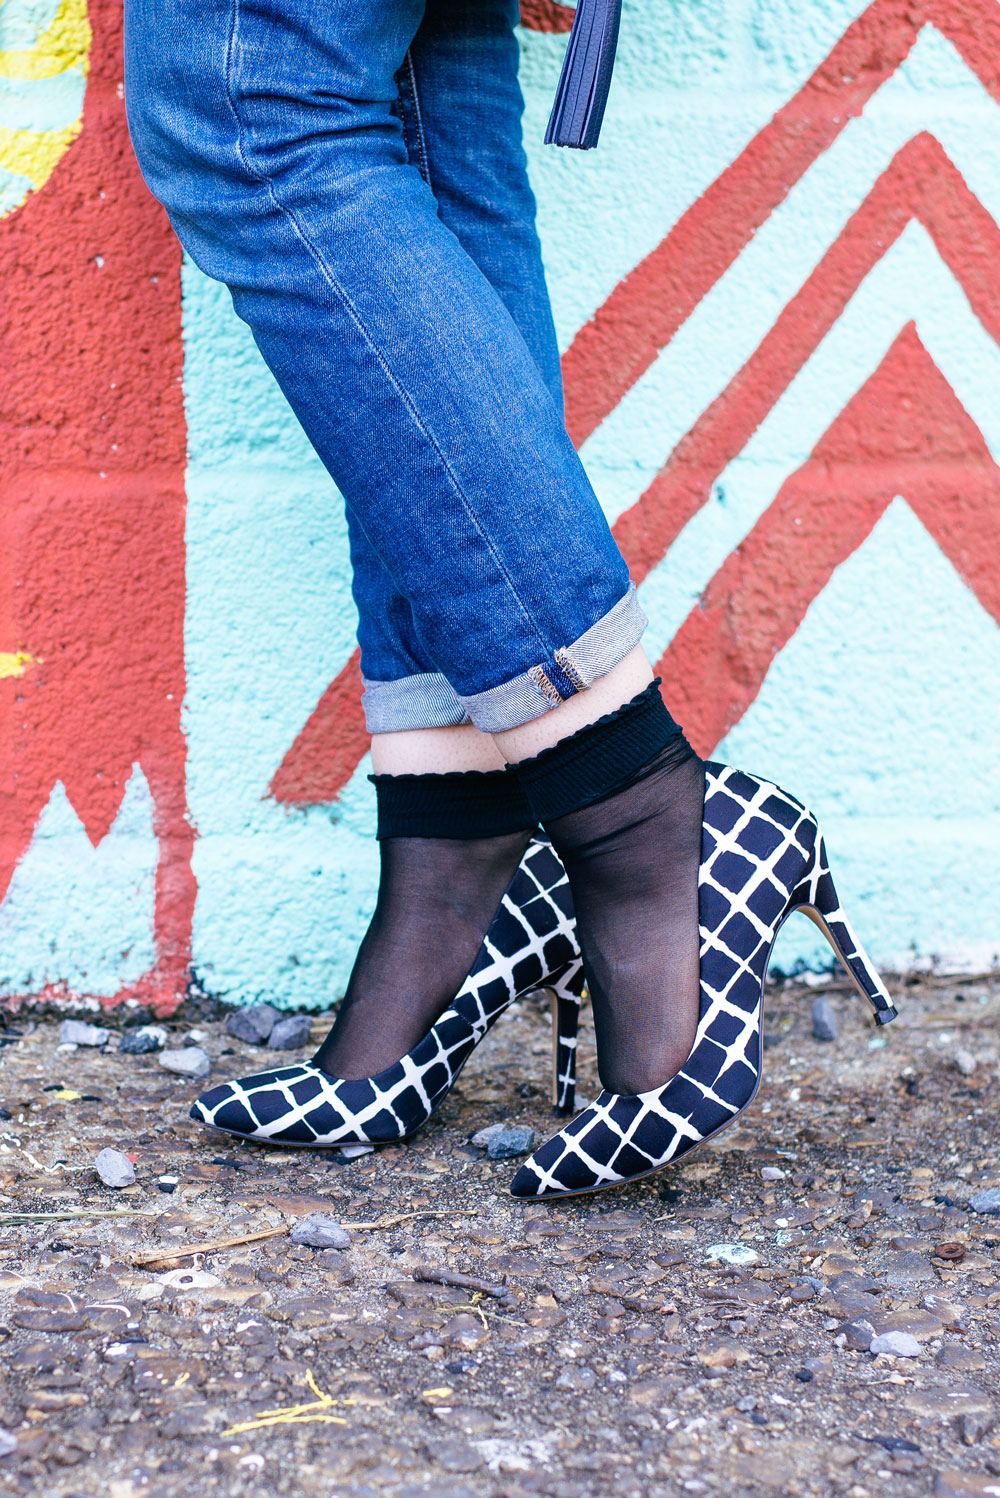 How to Wear Socks with Heels // Seattle Style Blogger